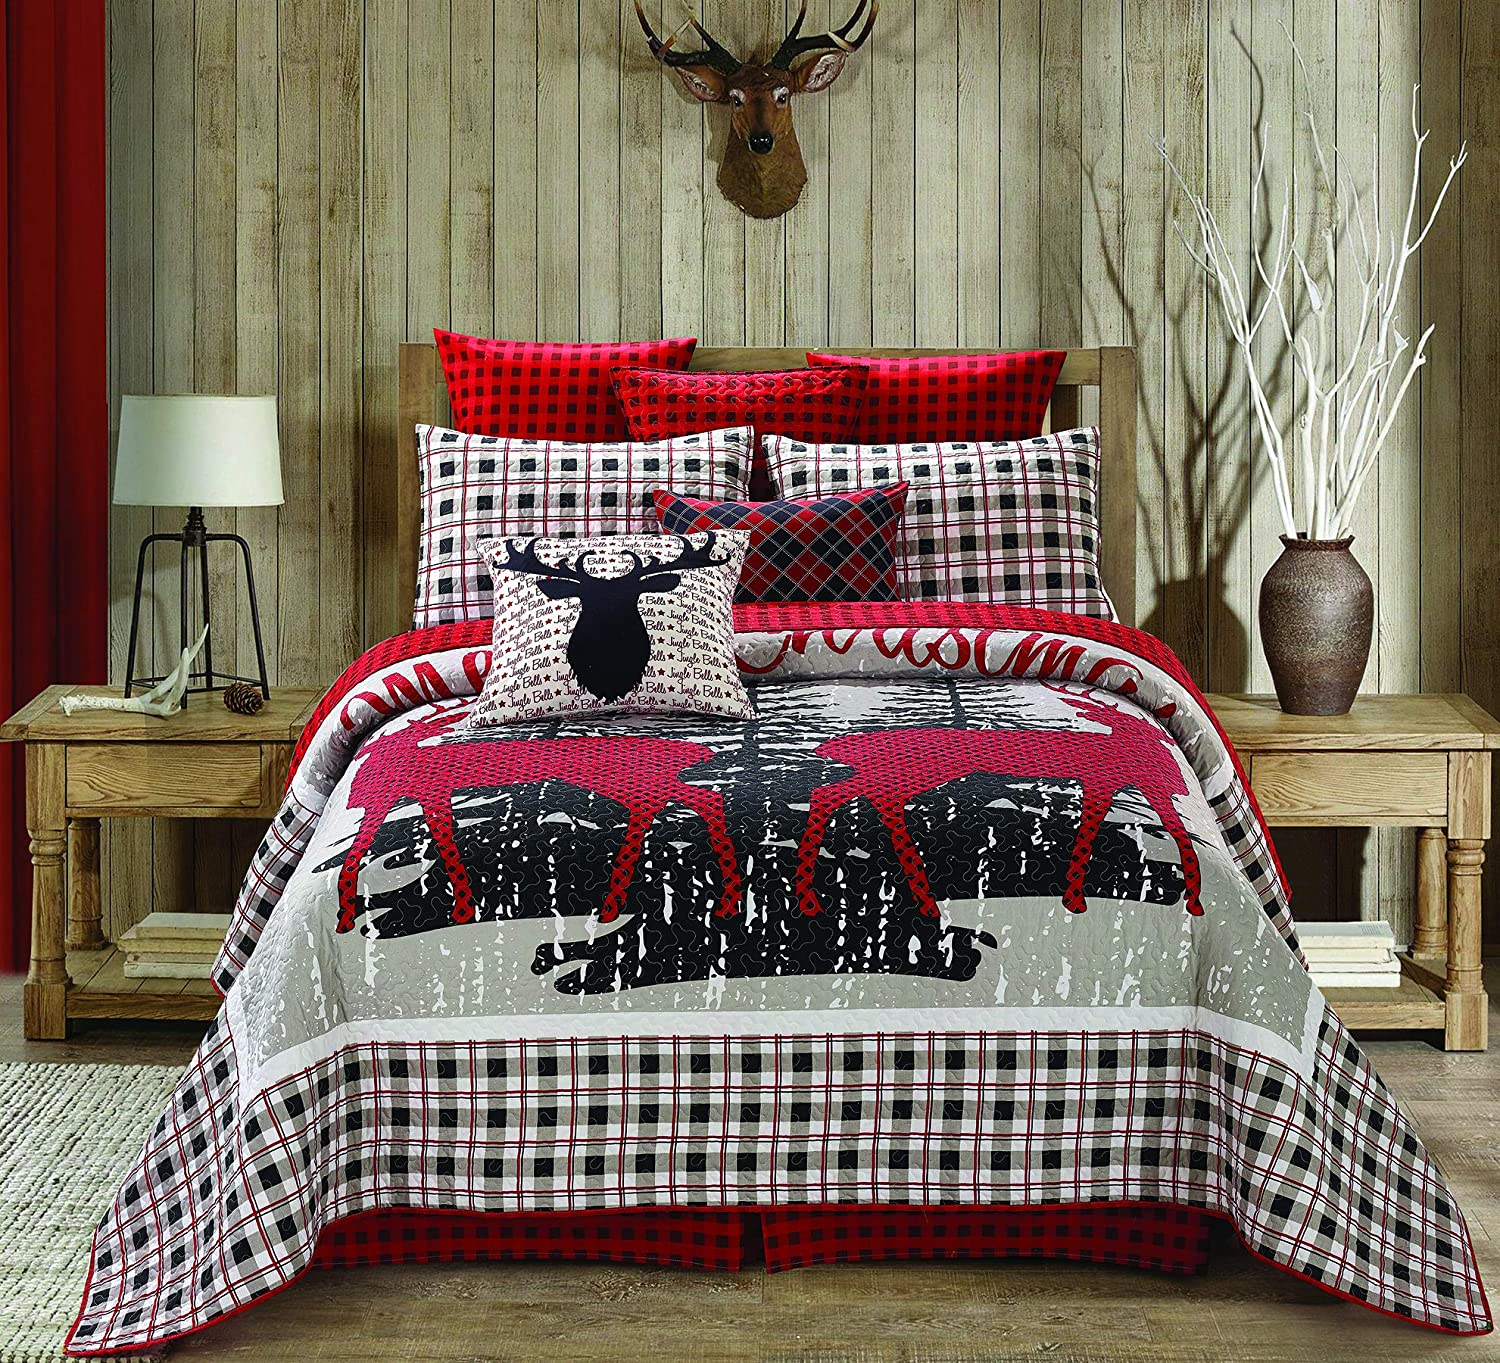 "Regal Comfort Virah Bella Chic Printed 3pc Quilt Set, Merry Christmas Reindeer Full/Queen Bed Sheets Design (90"" X 90"", Christmas Plaid Red White) Holiday Bedding"